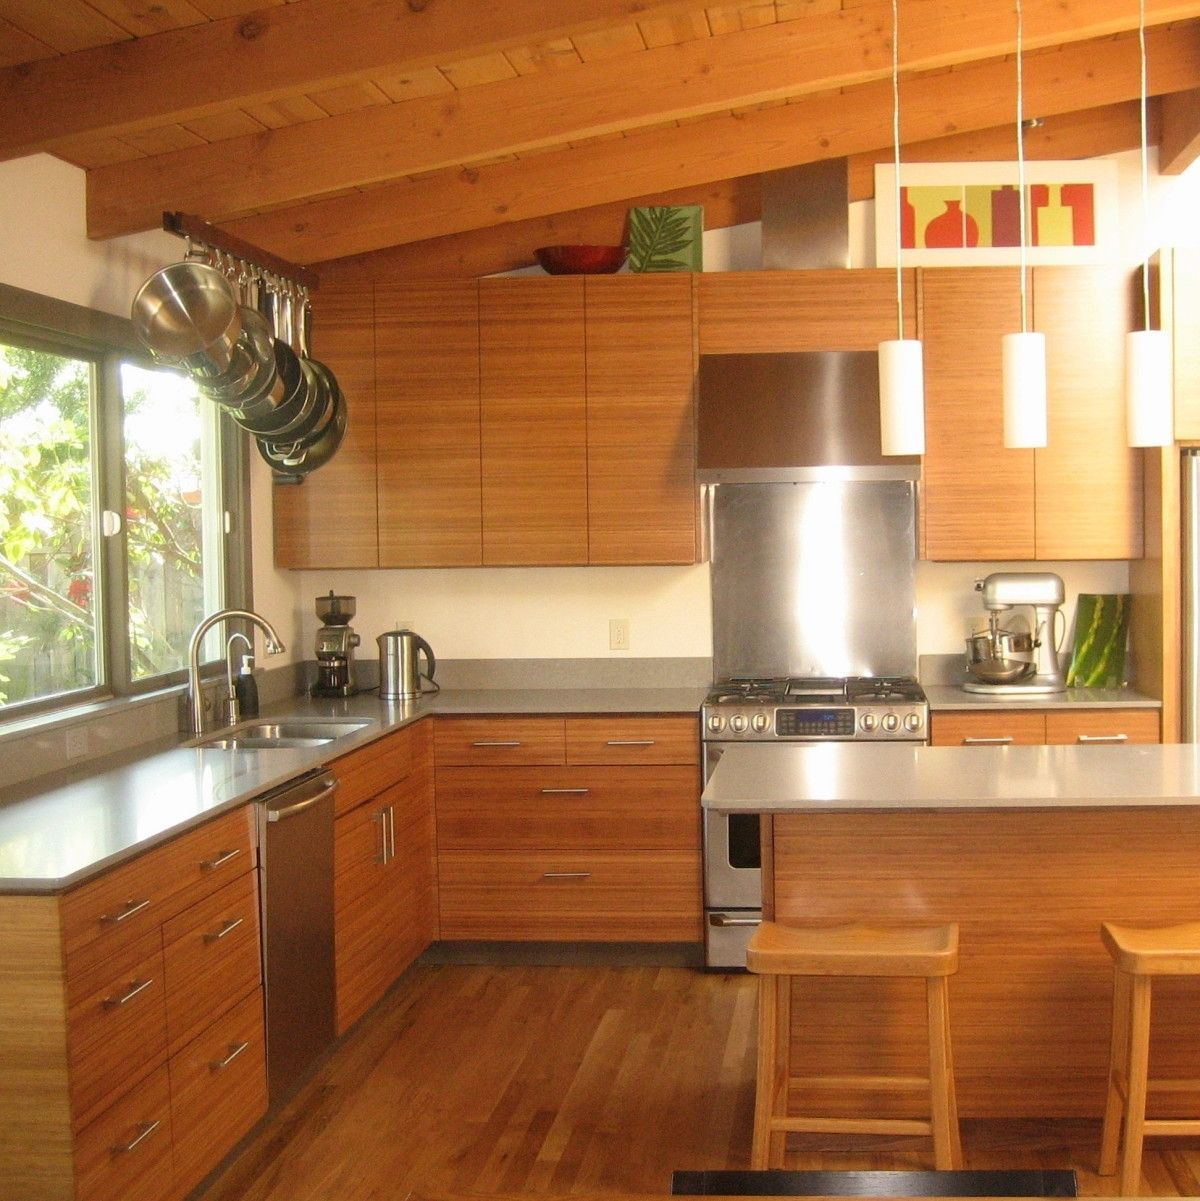 5 Tips On Build Small Kitchen Remodeling Ideas On A Budget: Tips Installing Fir Kitchen Cabinets